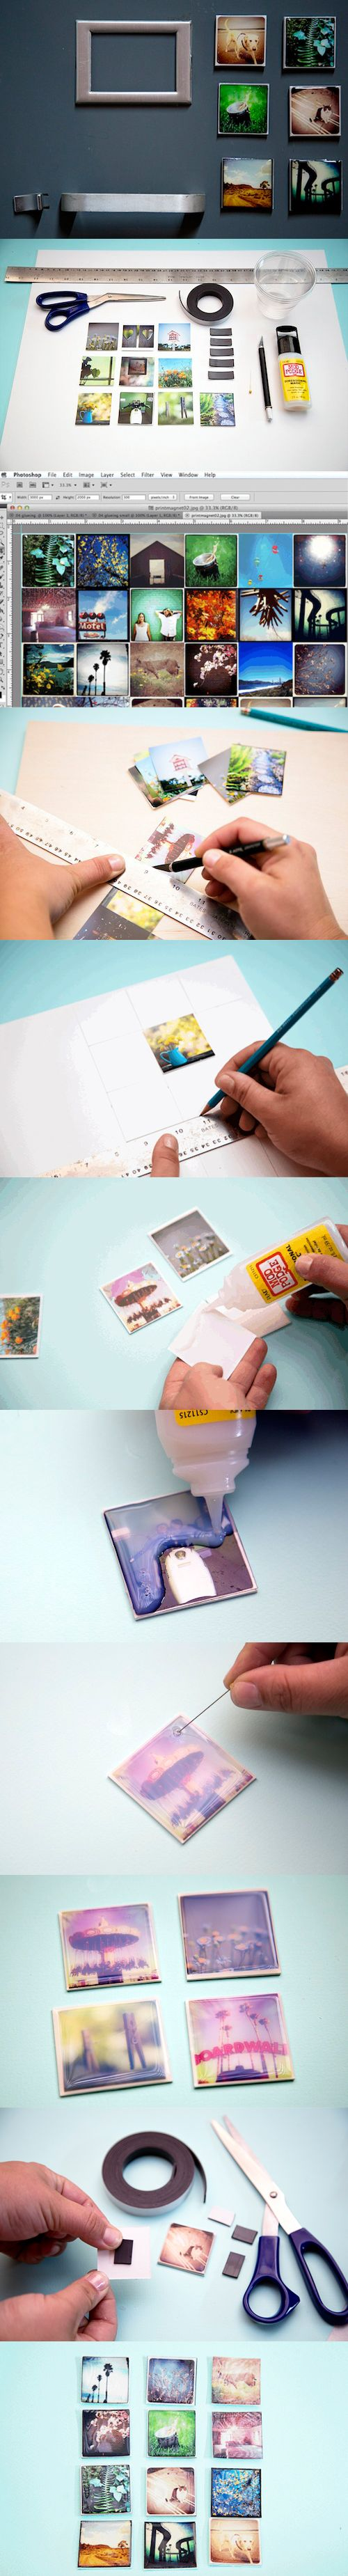 Have you tried making our magnetic photo tiles yet? With this step by step guide, there's no reason not to!